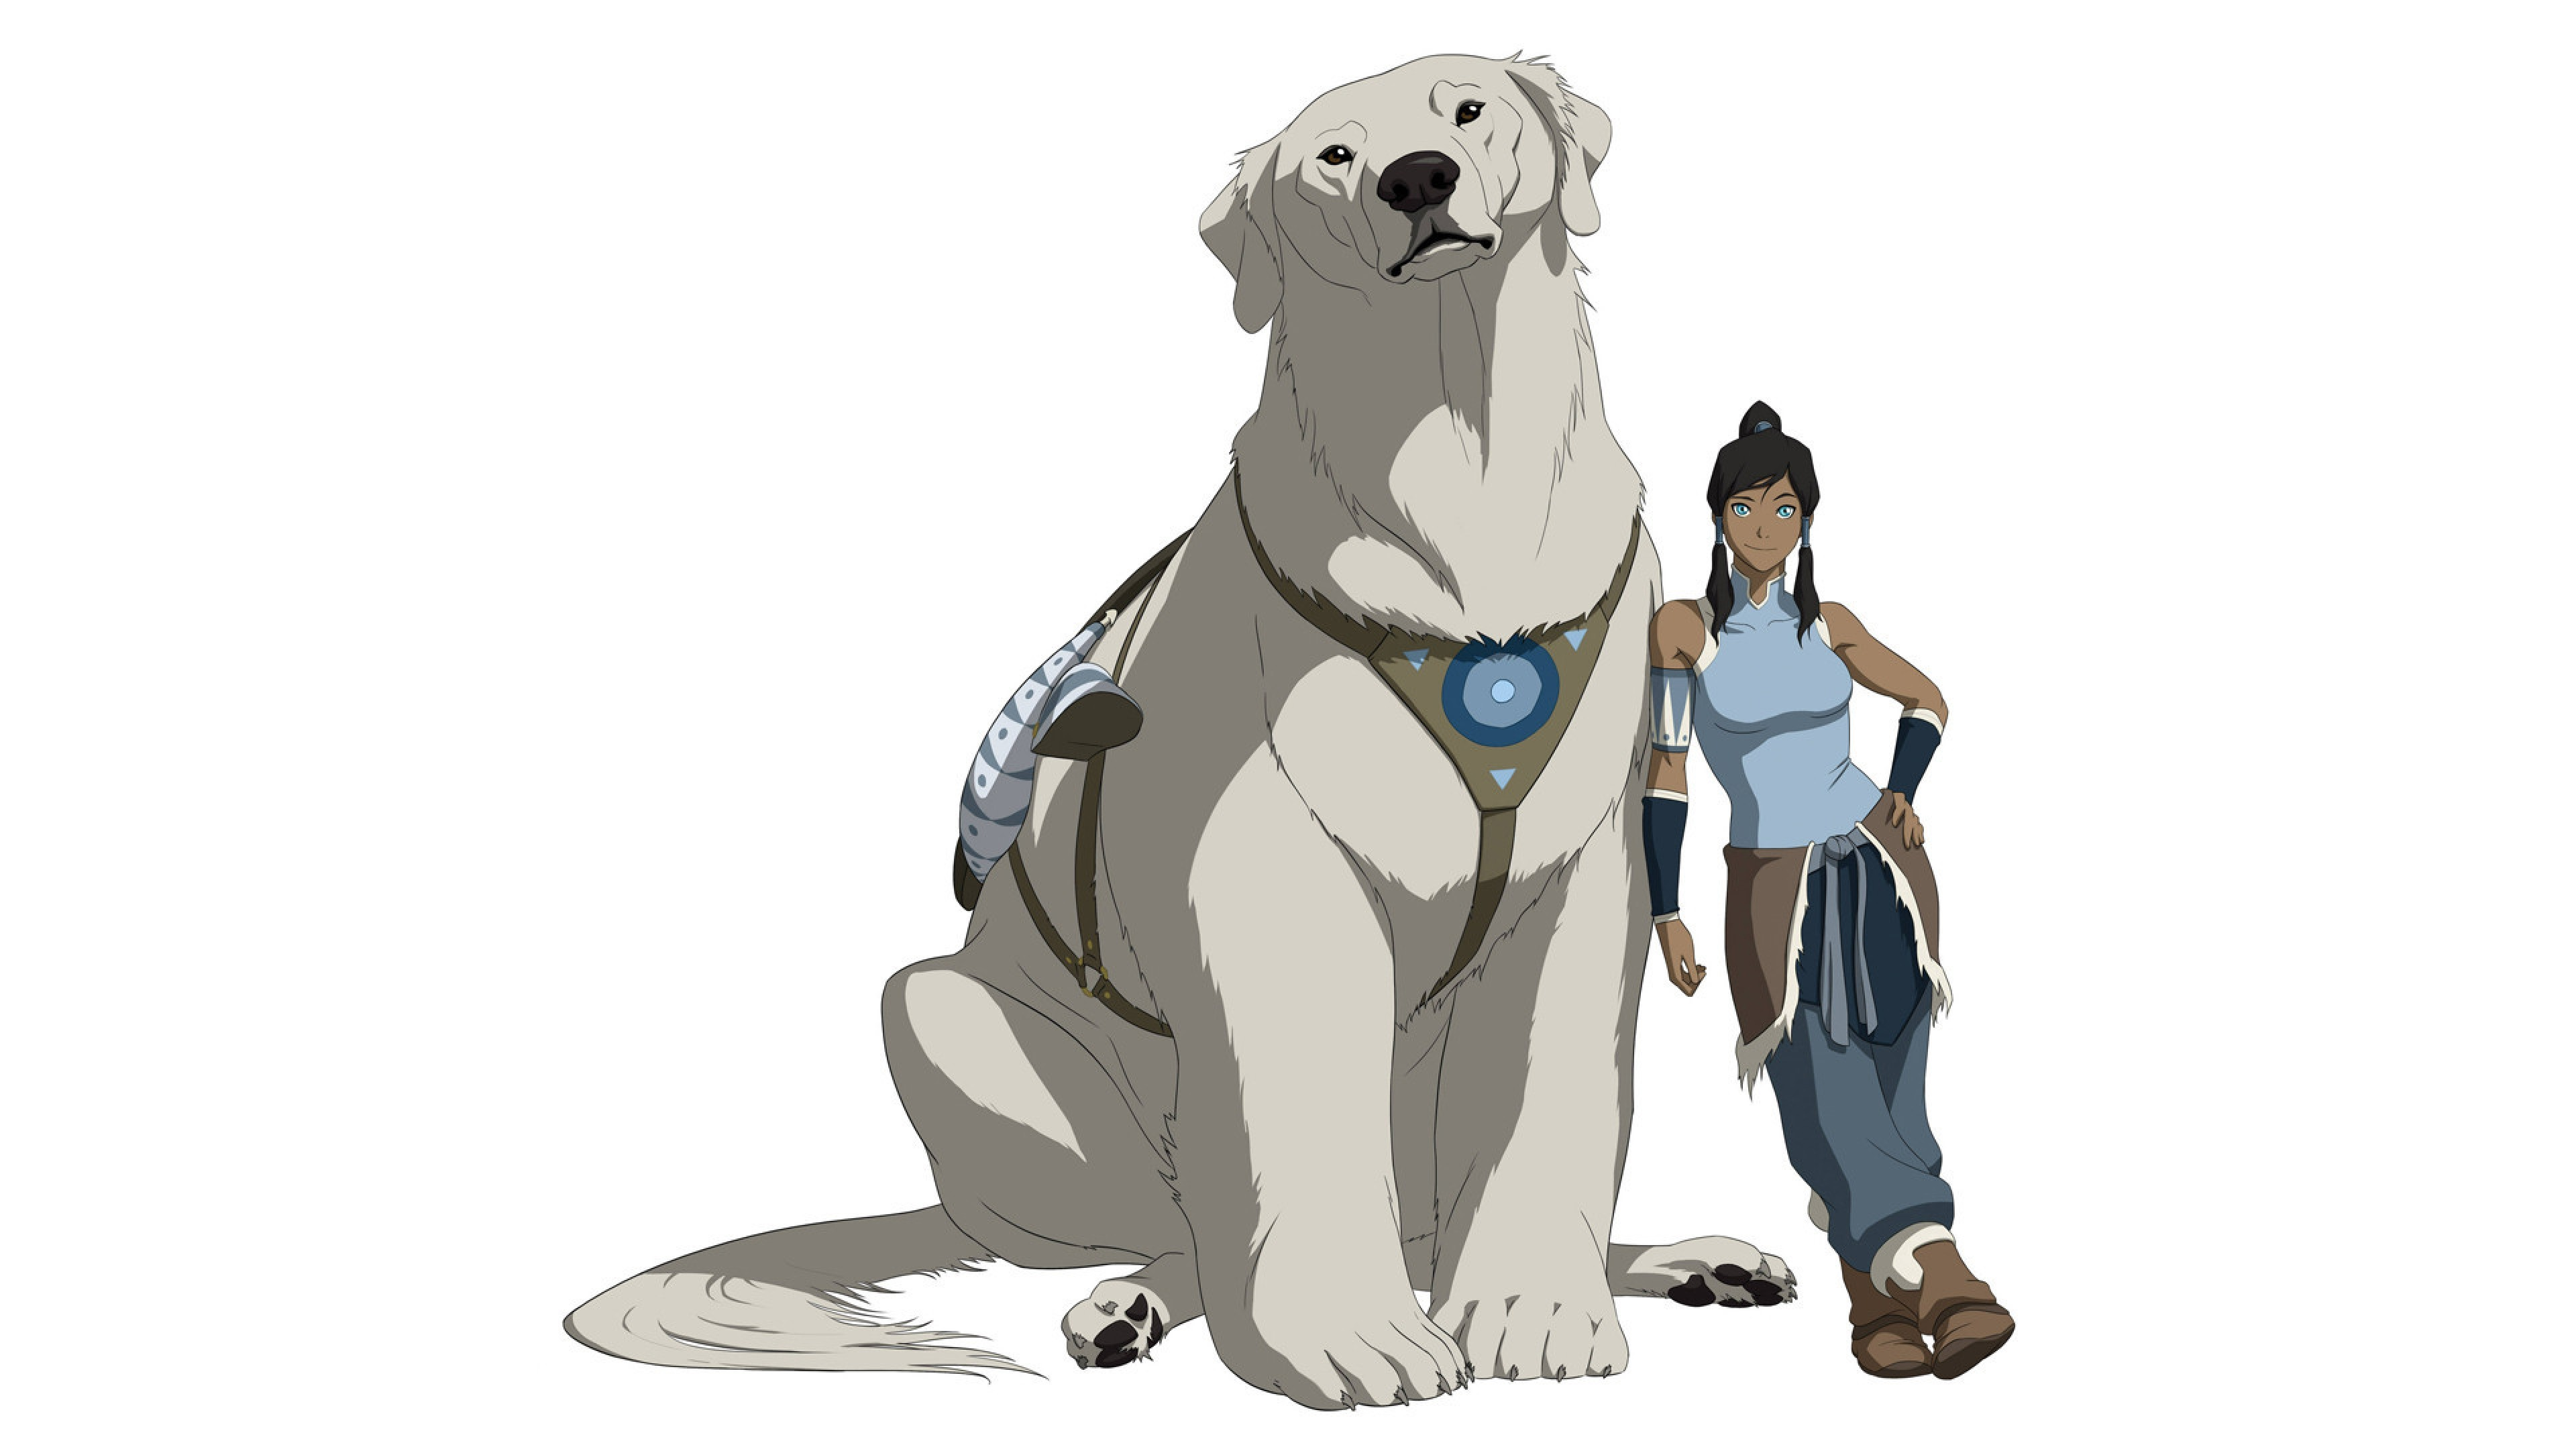 3840x2160  Wallpaper avatar, the legend of korra, naga, korra